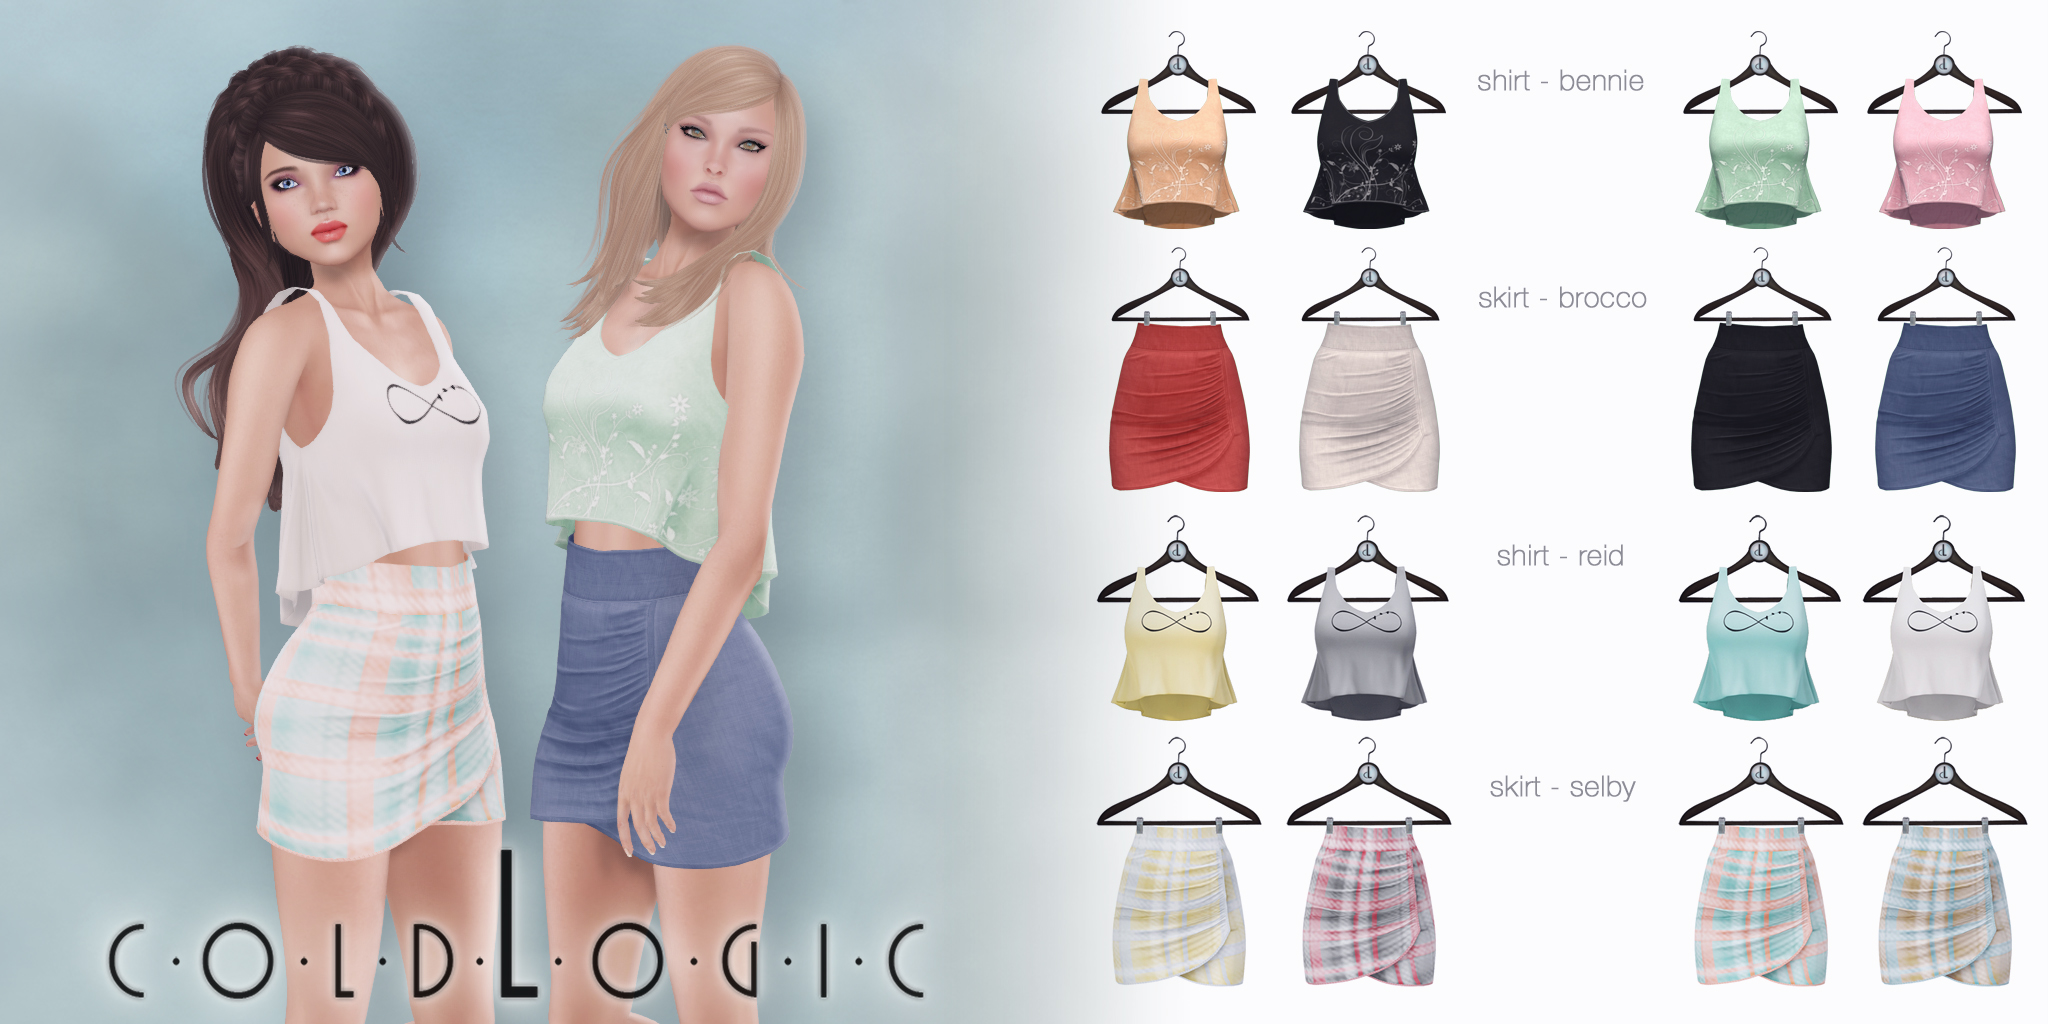 coldLogic - wrapped pencil skirts & tank tops